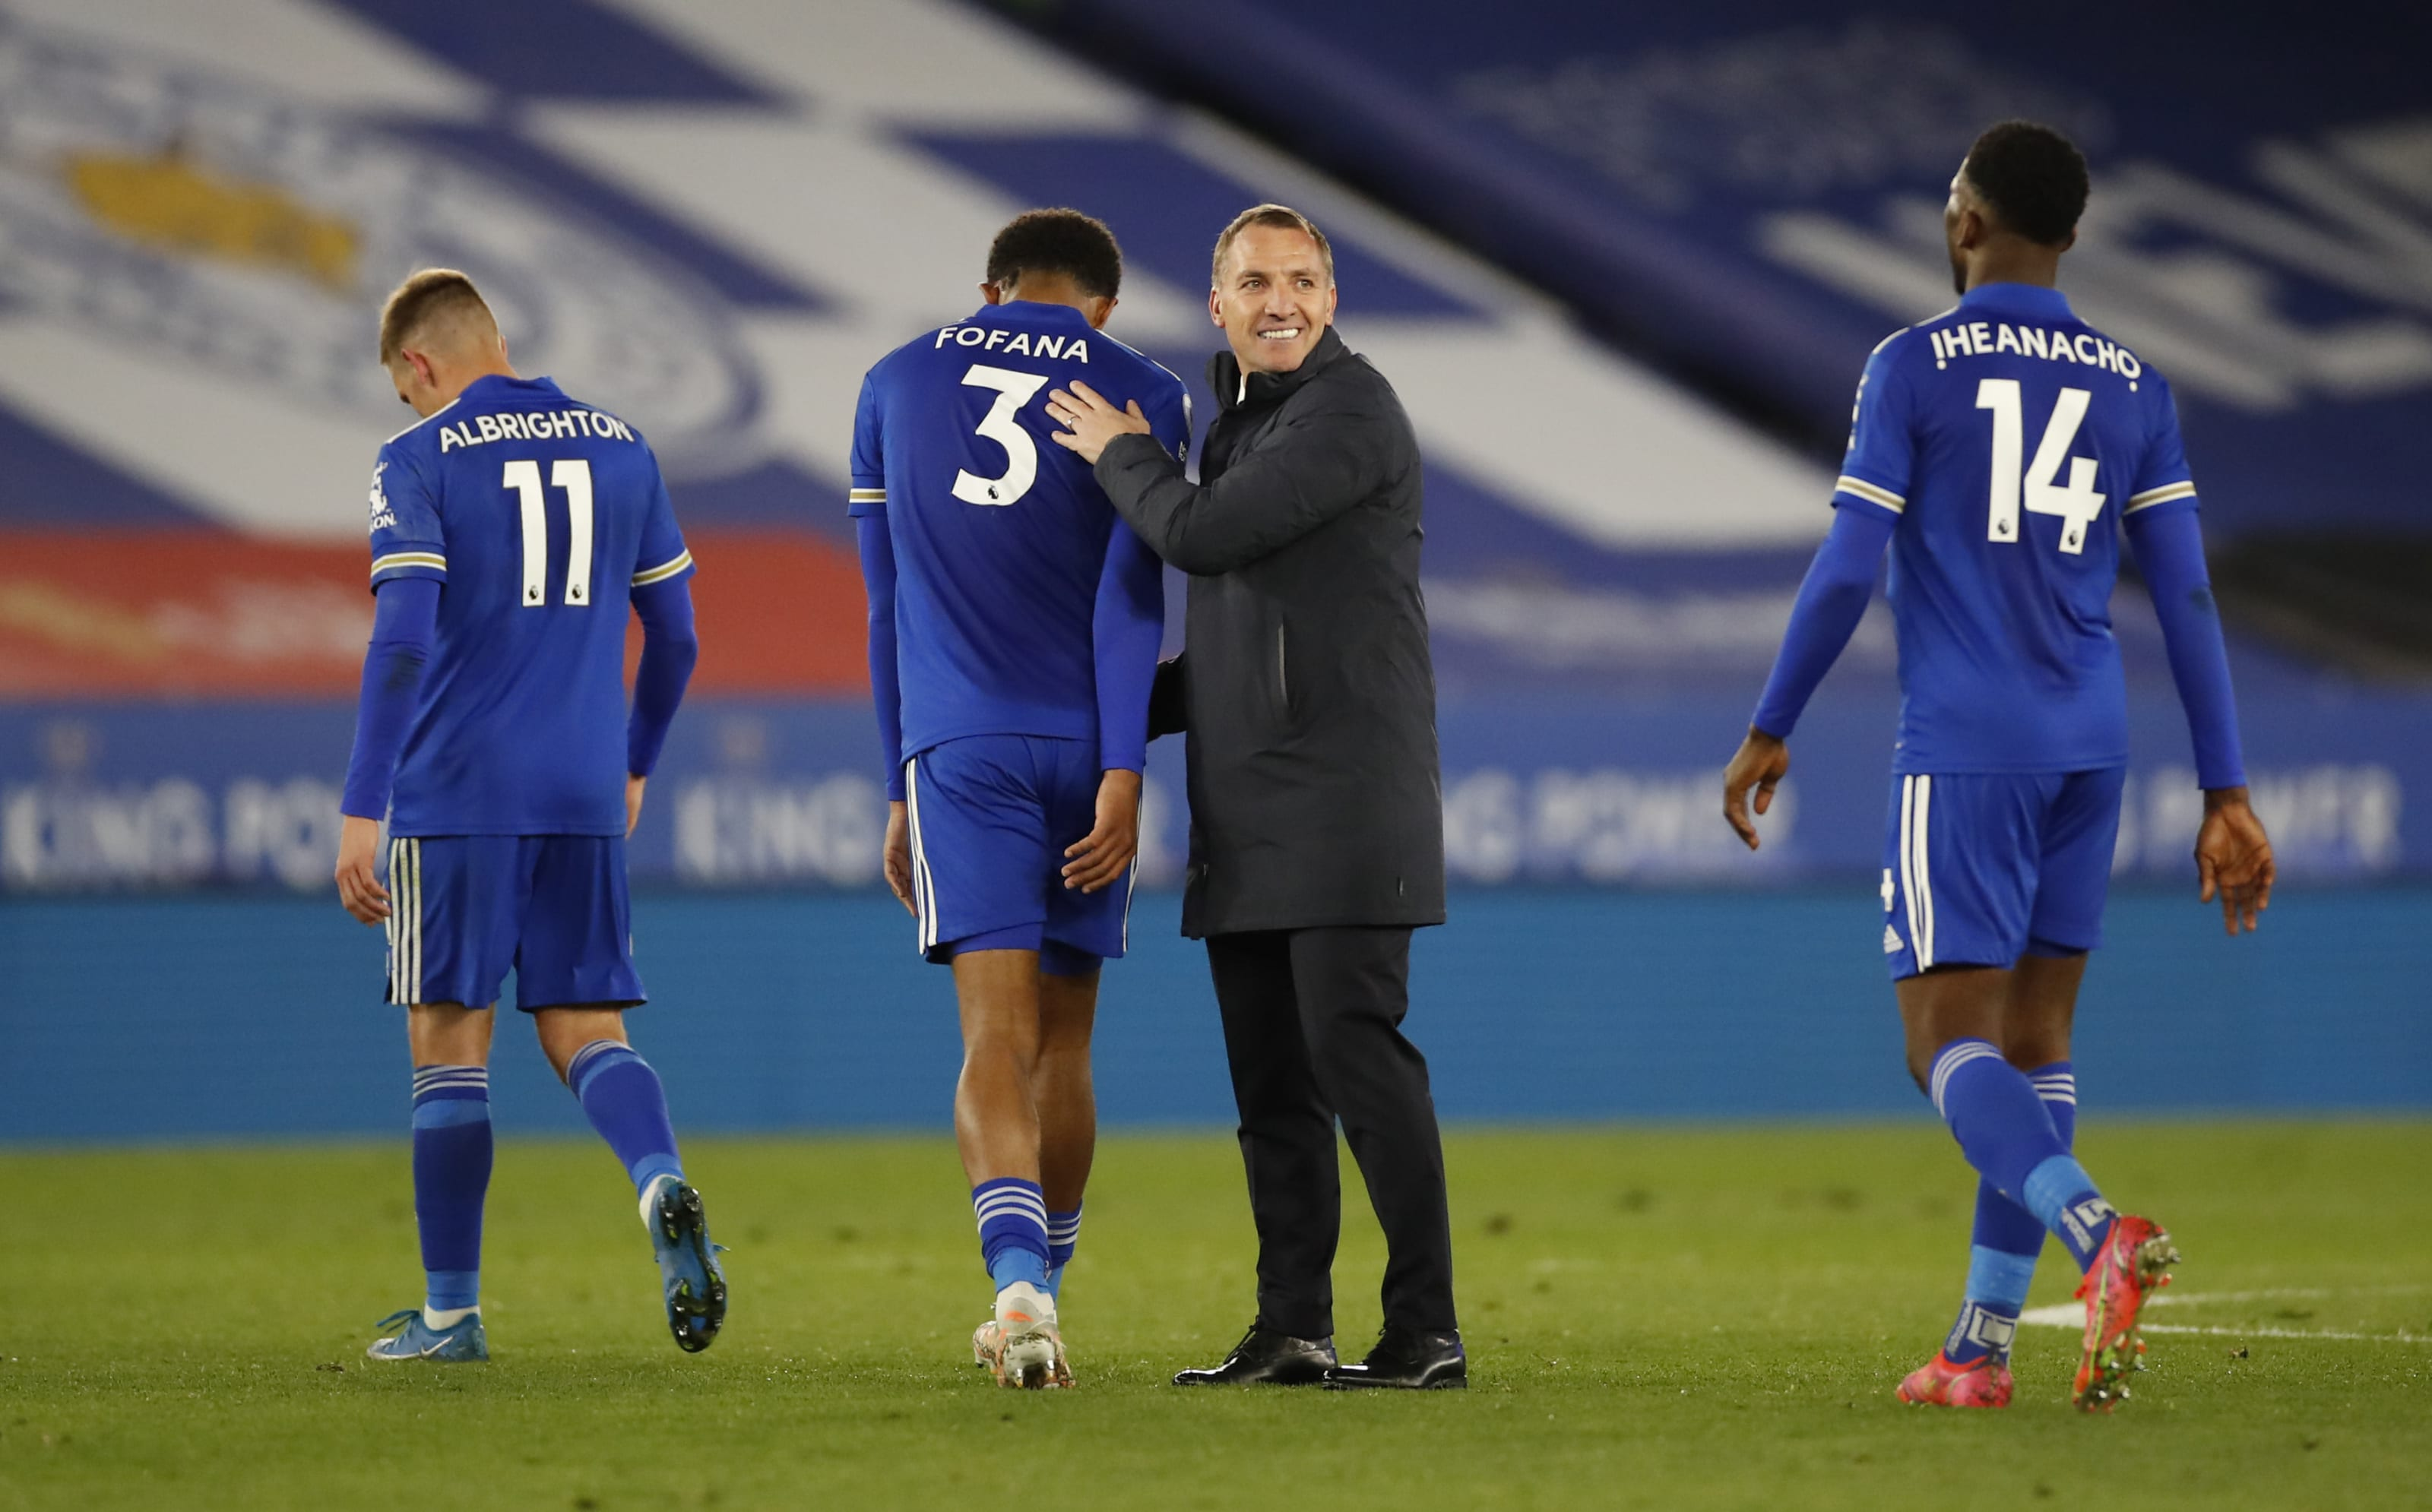 Sportsmanship of Leicester City and opposition; Fox in Team of Week